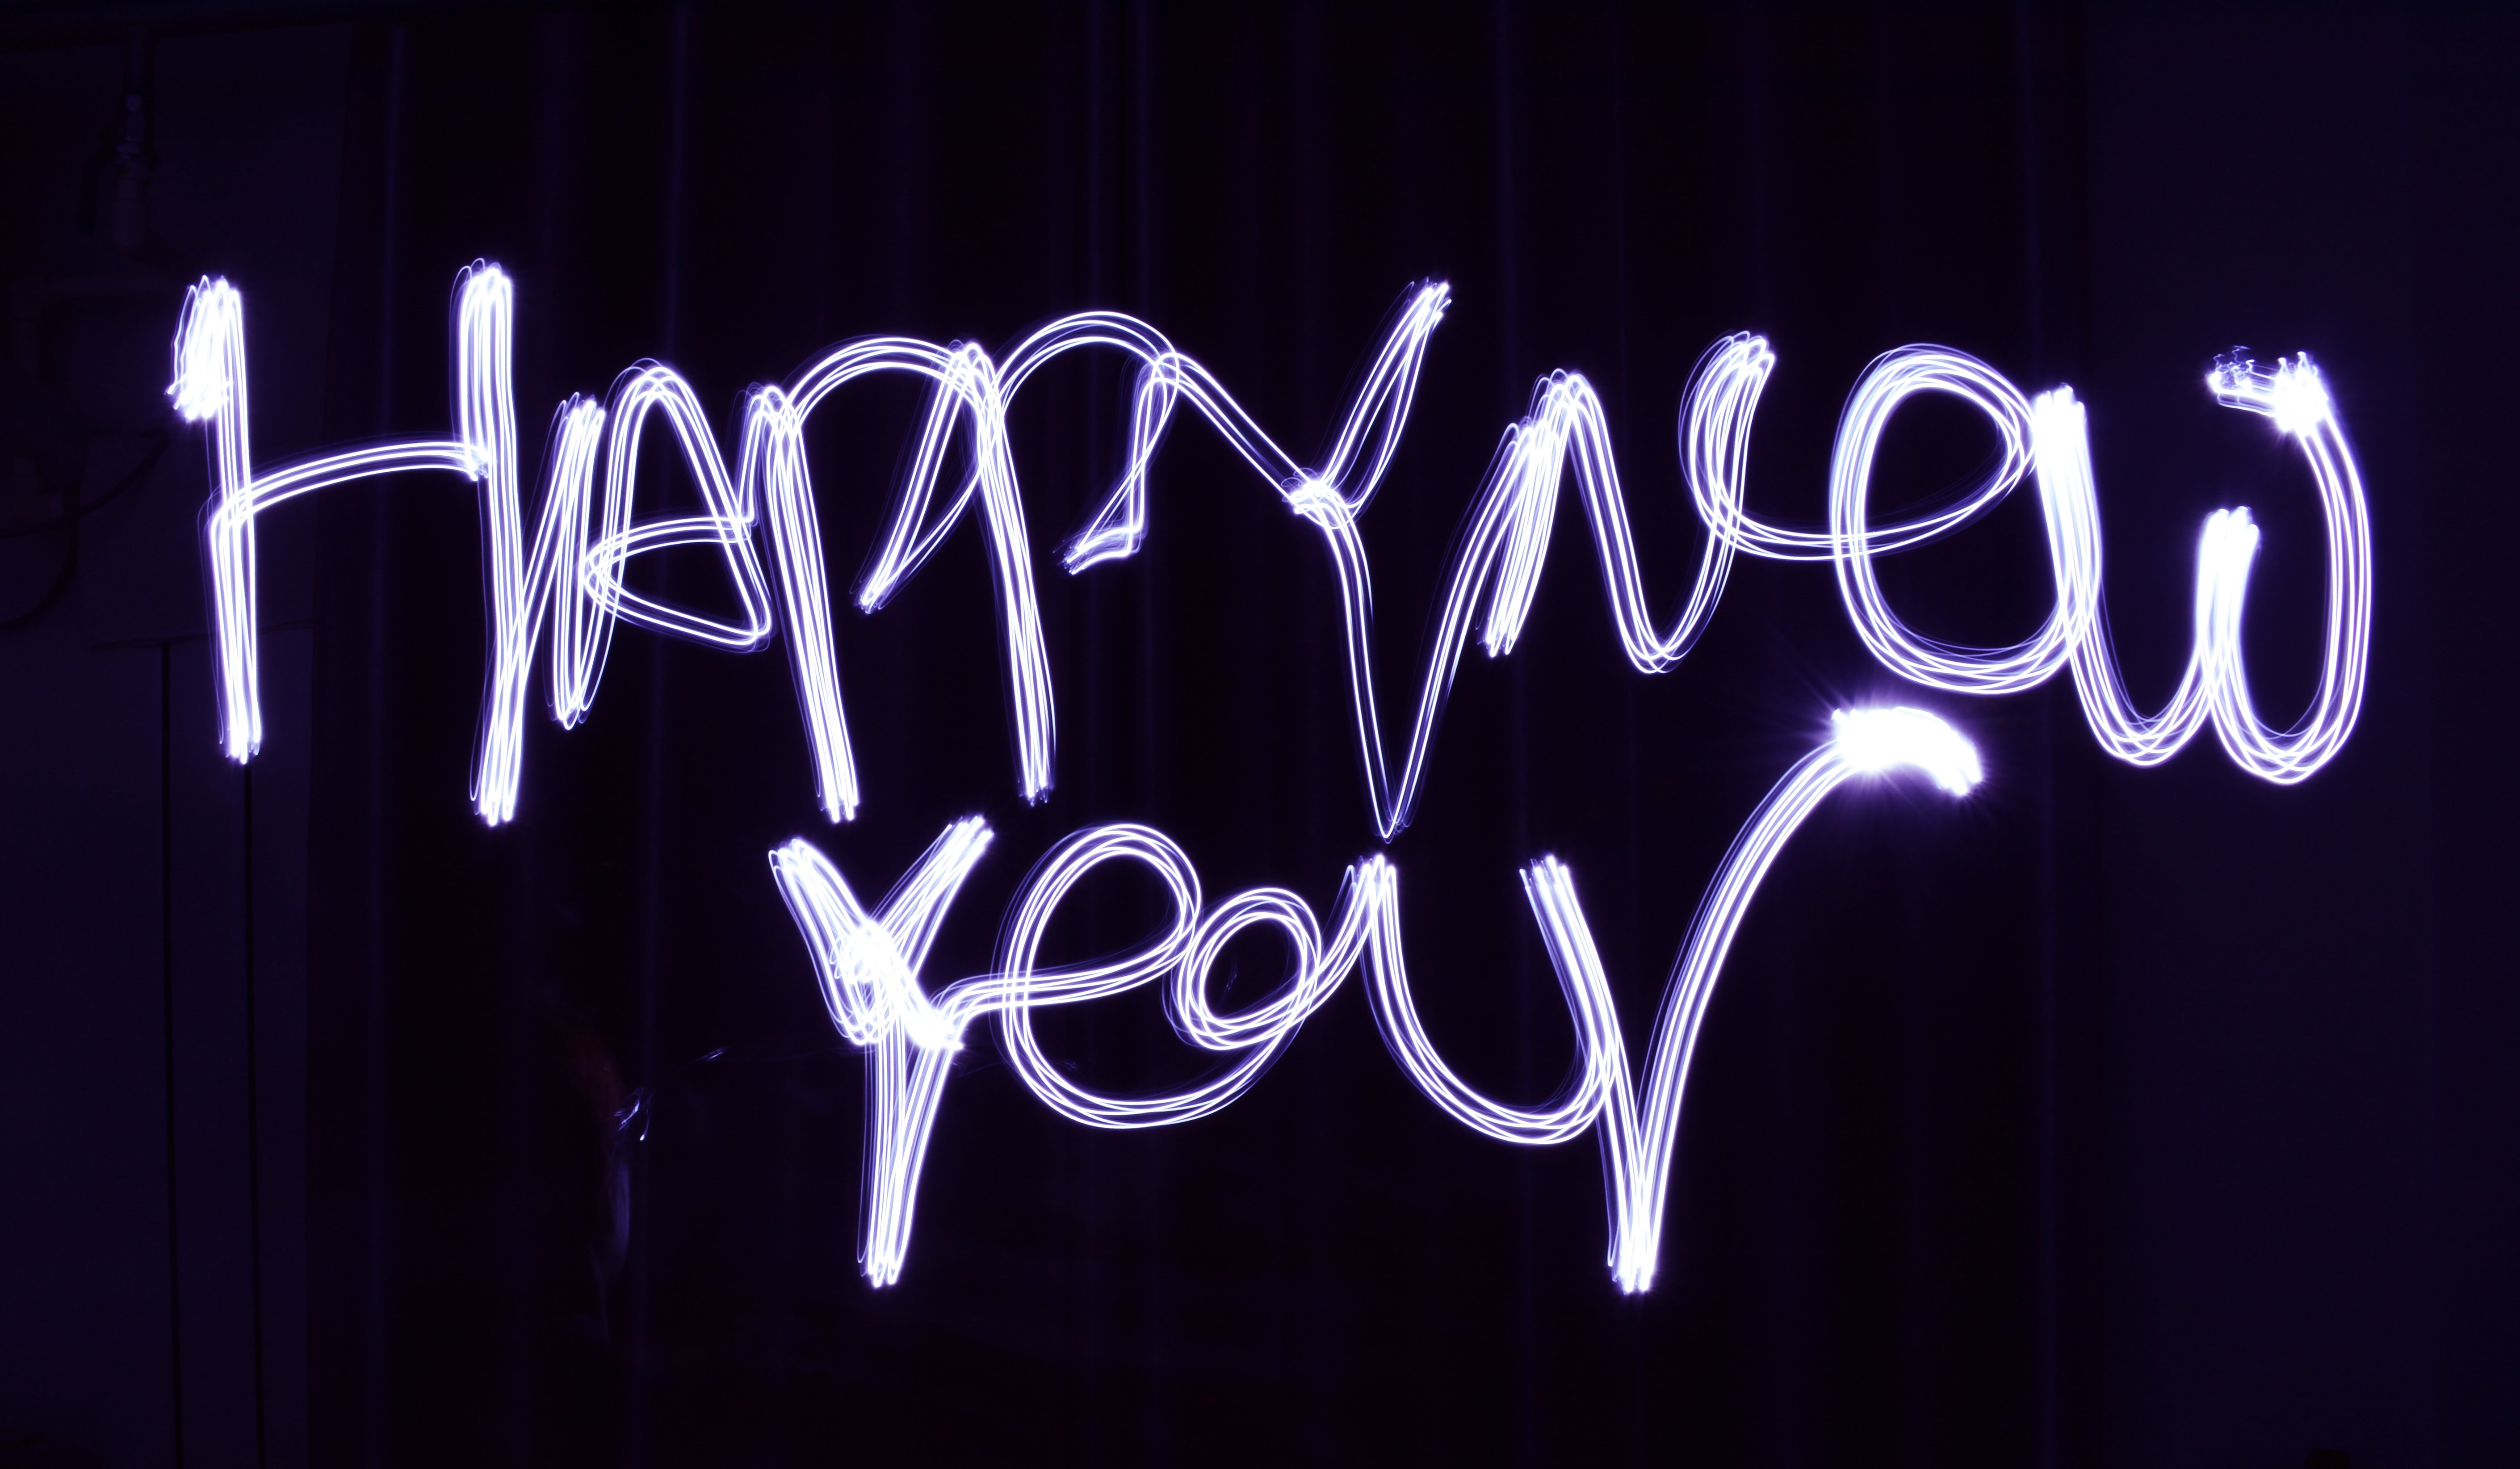 A new year brings many blessings